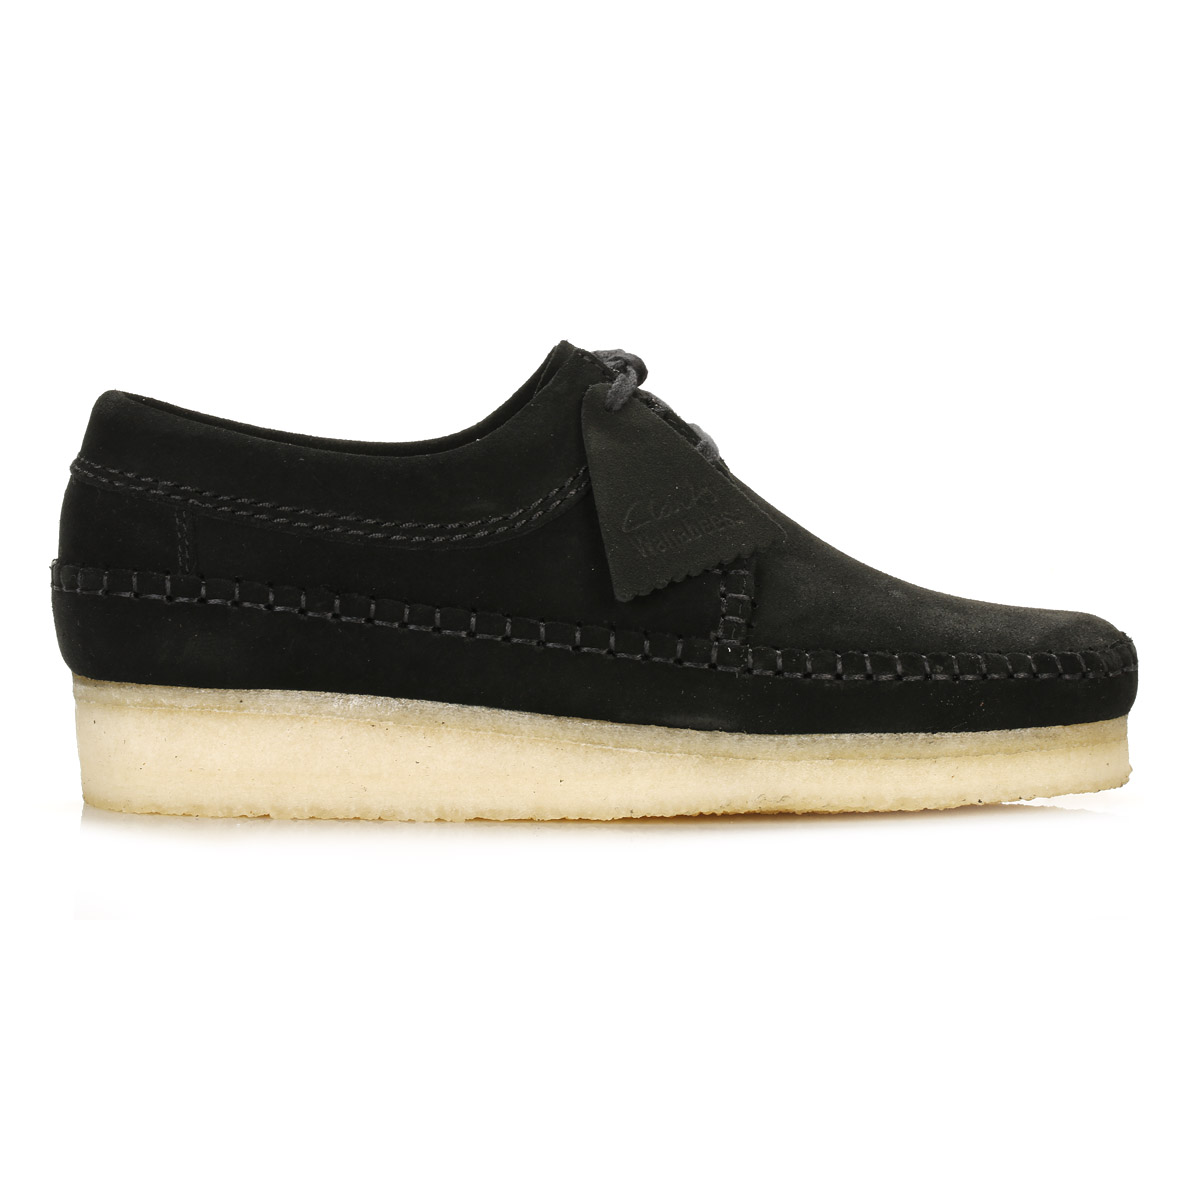 Clarks Mens Casual Flat Shoes